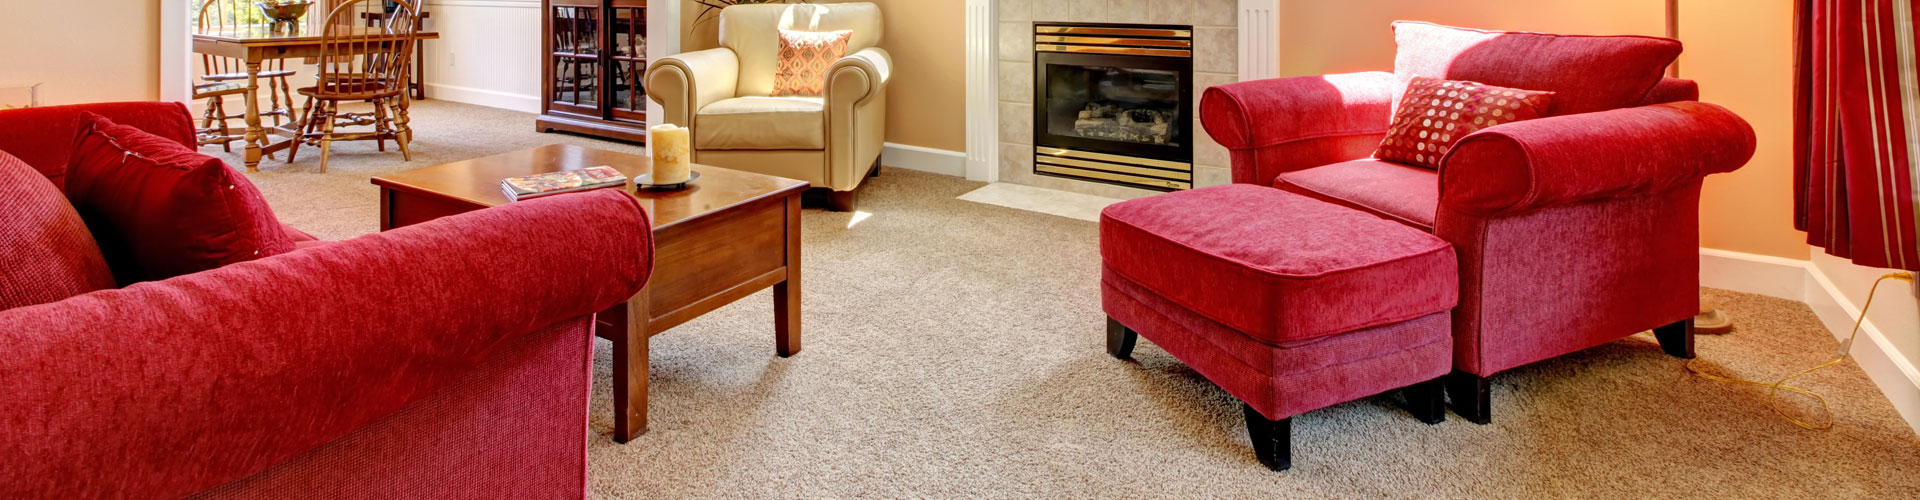 Professional Carpet Cleaning Upholstery Amp Air Duct